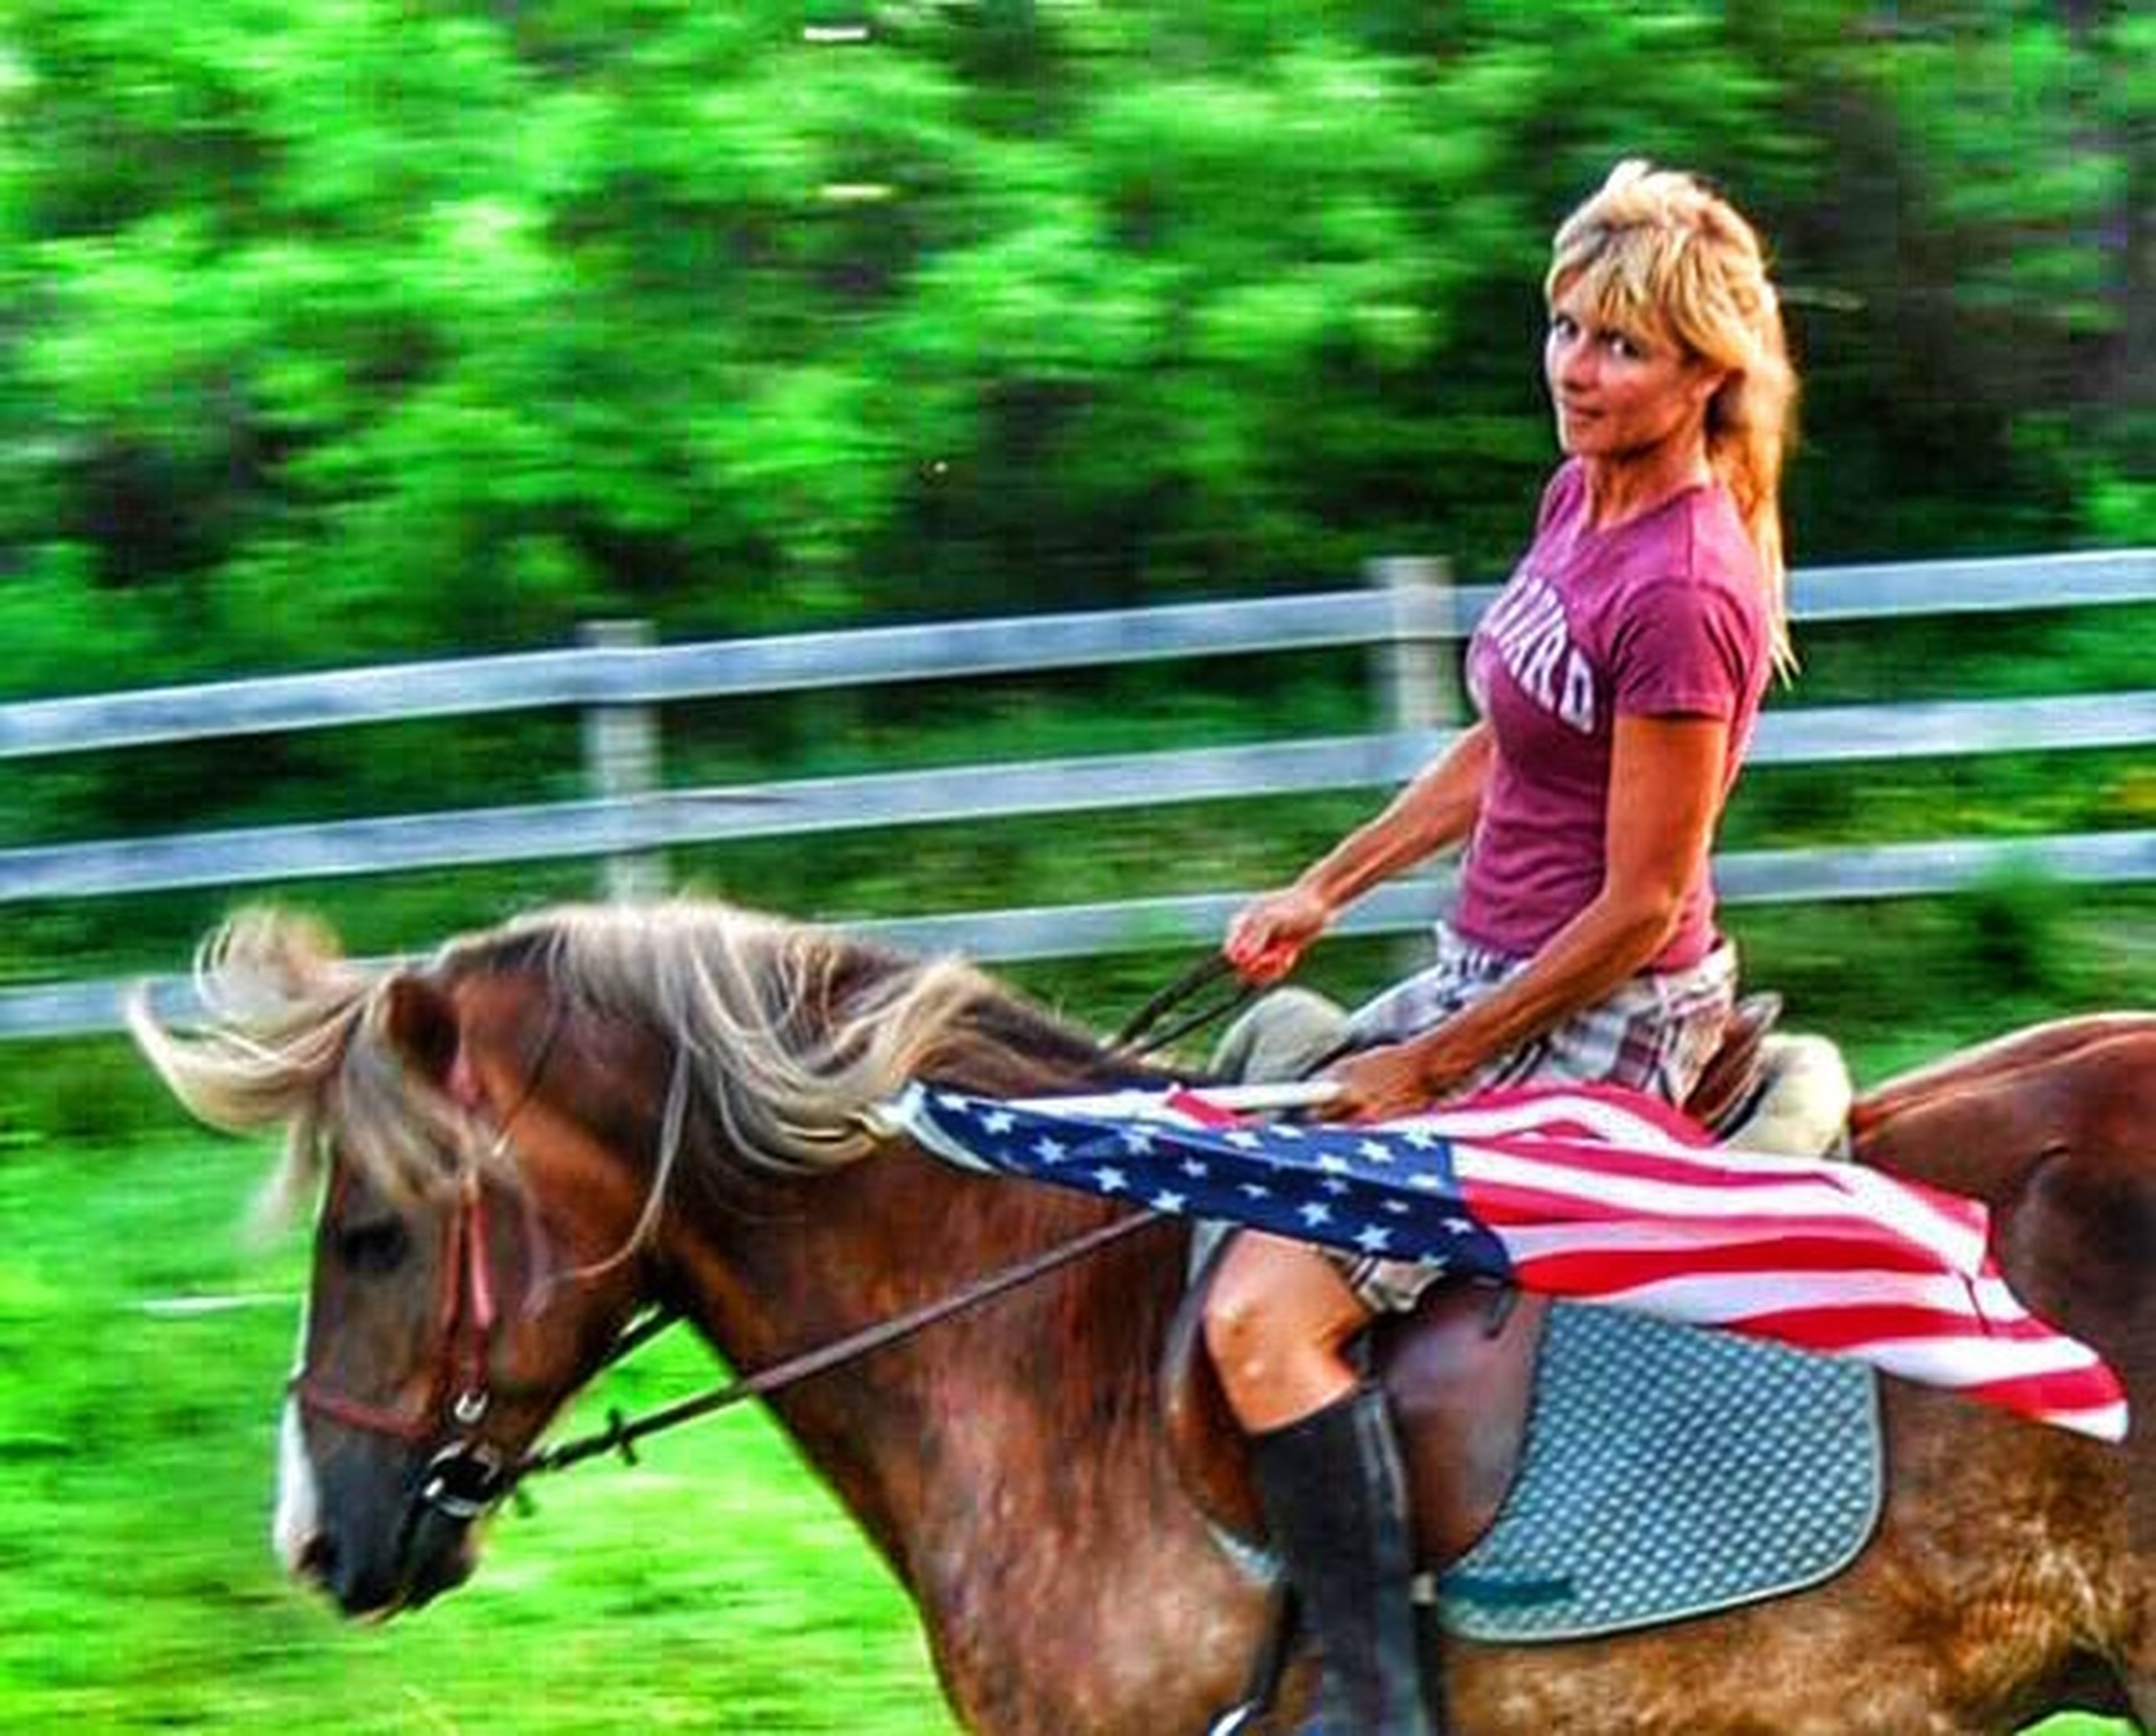 leisure activity, lifestyles, horse, long hair, casual clothing, young adult, side view, focus on foreground, person, young women, three quarter length, fun, animal themes, motion, standing, full length, outdoors, blond hair